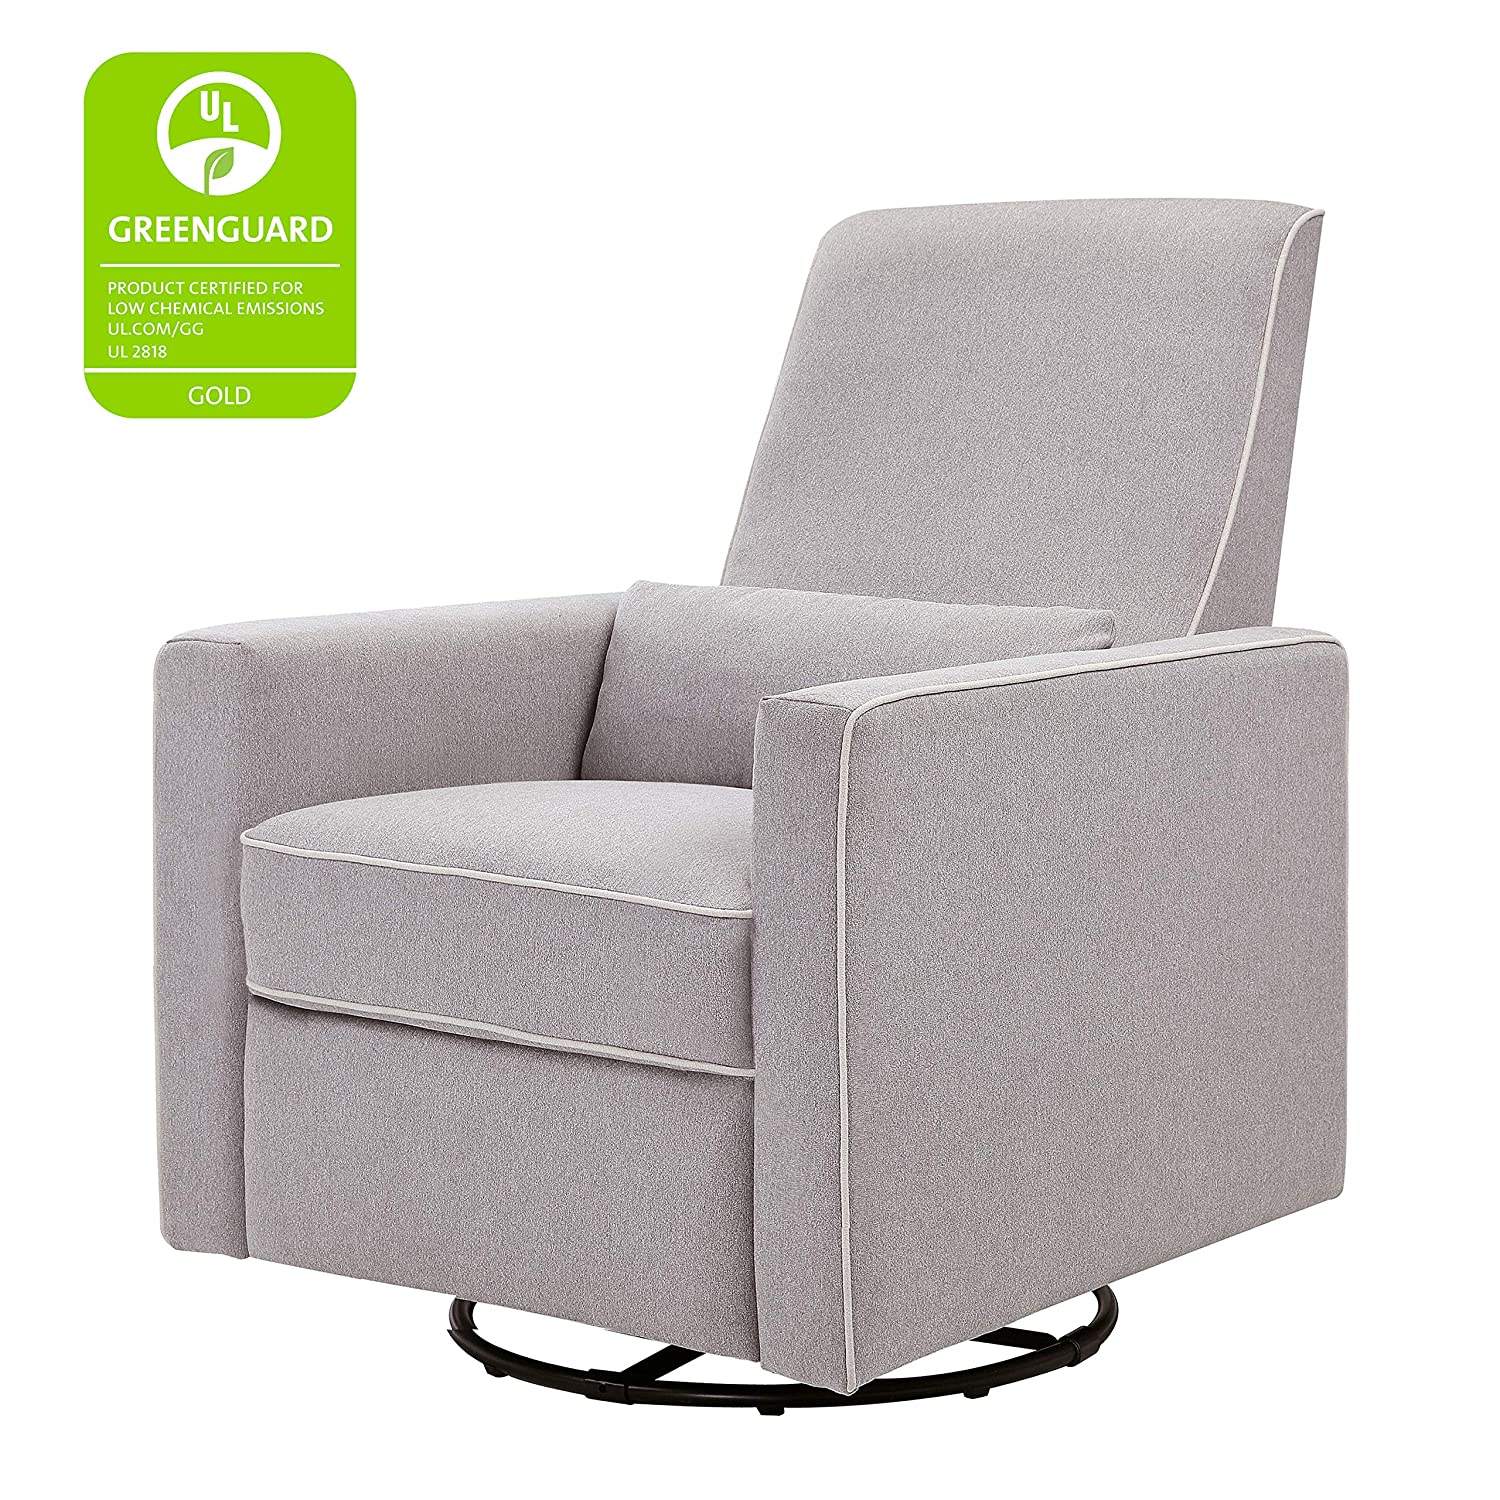 brand new 2f8b9 4d02f DaVinci Piper Upholstered Recliner and Swivel Glider, Grey with Cream Piping